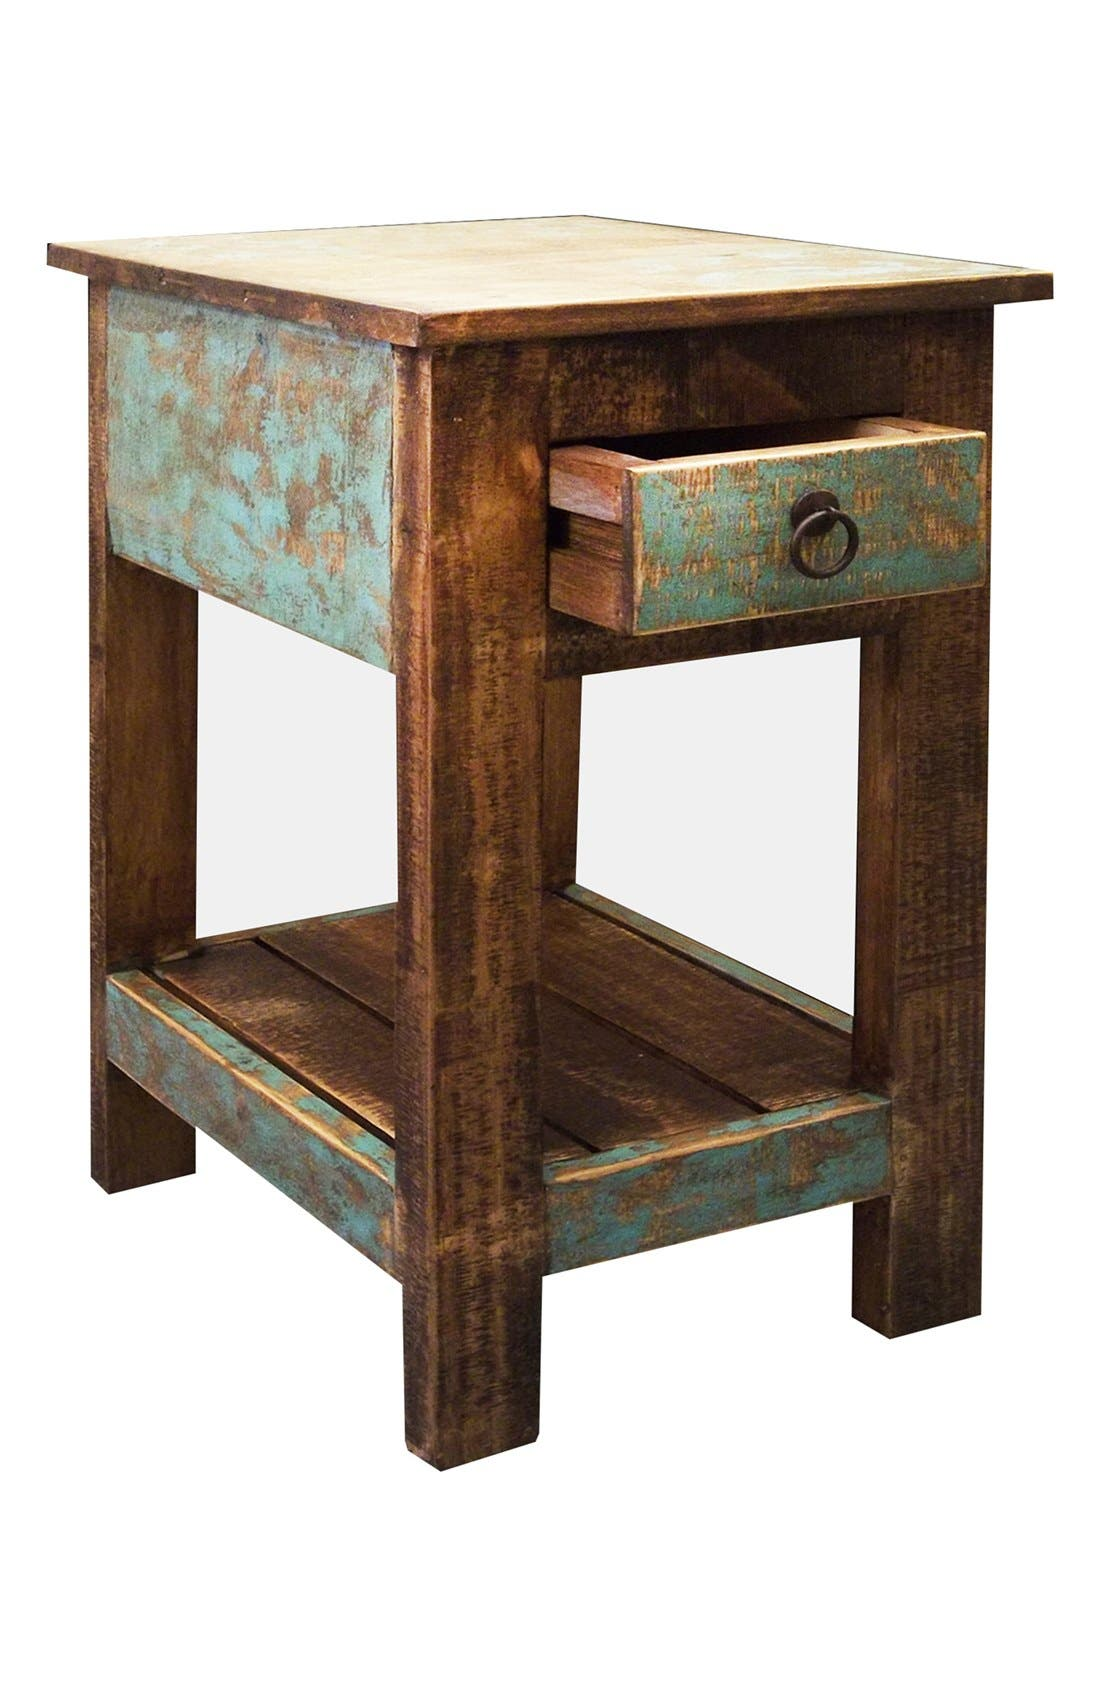 Alternate Image 1 Selected - Small Rustic Side Table